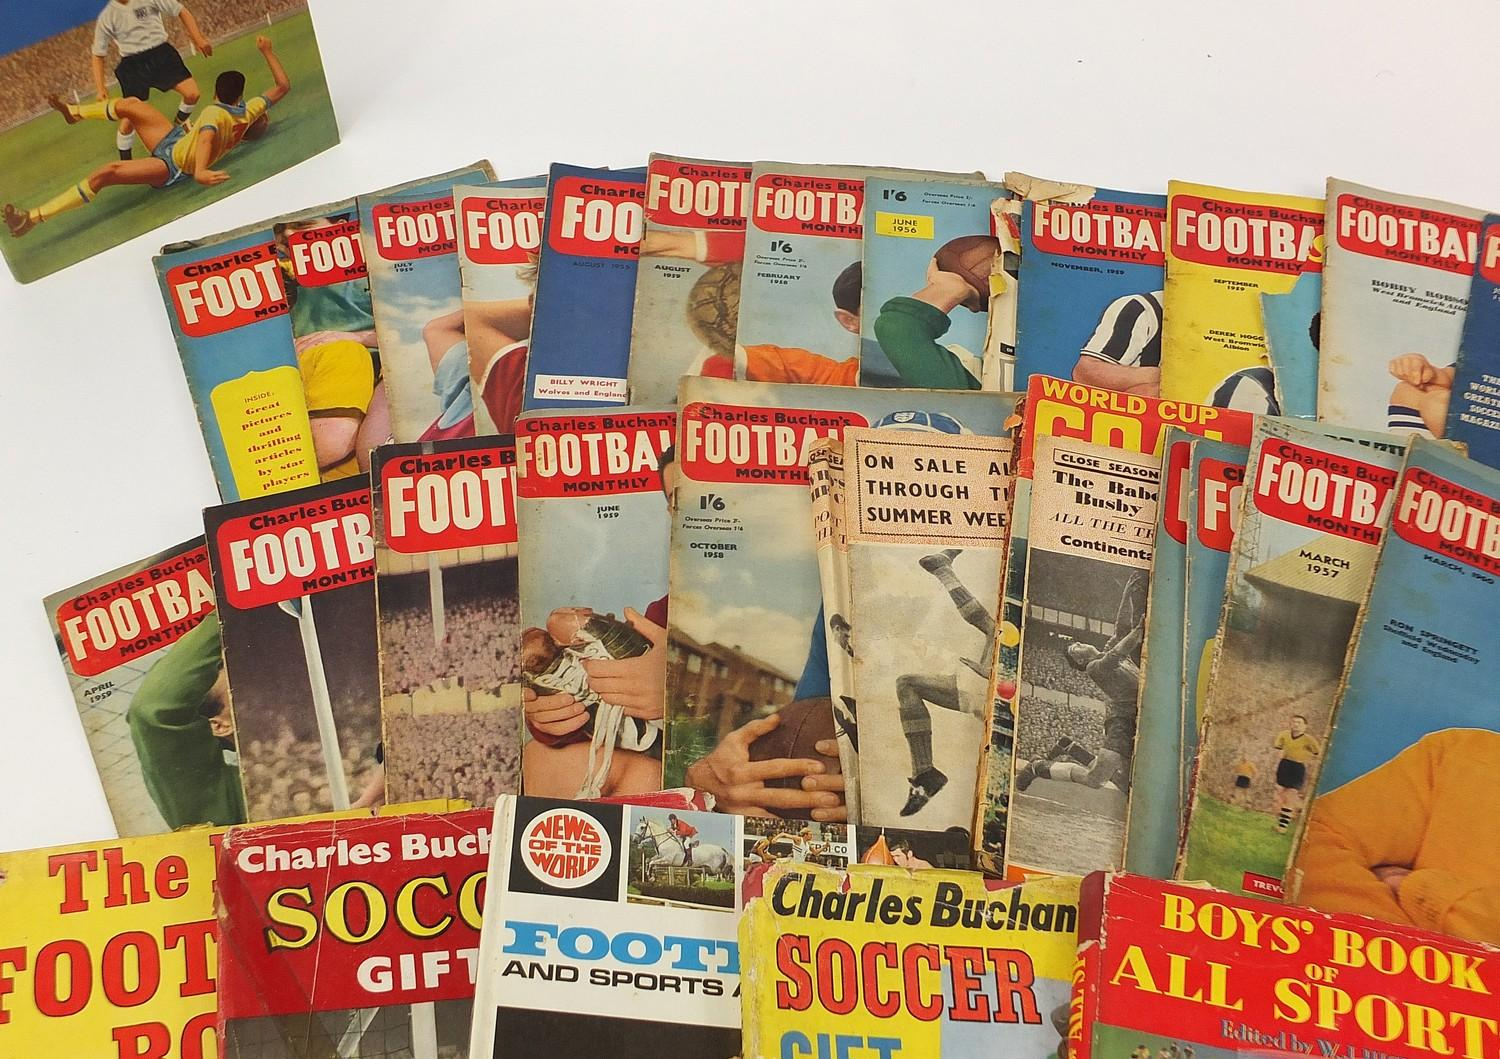 Collection of vintage and later football related books and magazines including The Real Madrid and - Image 2 of 7